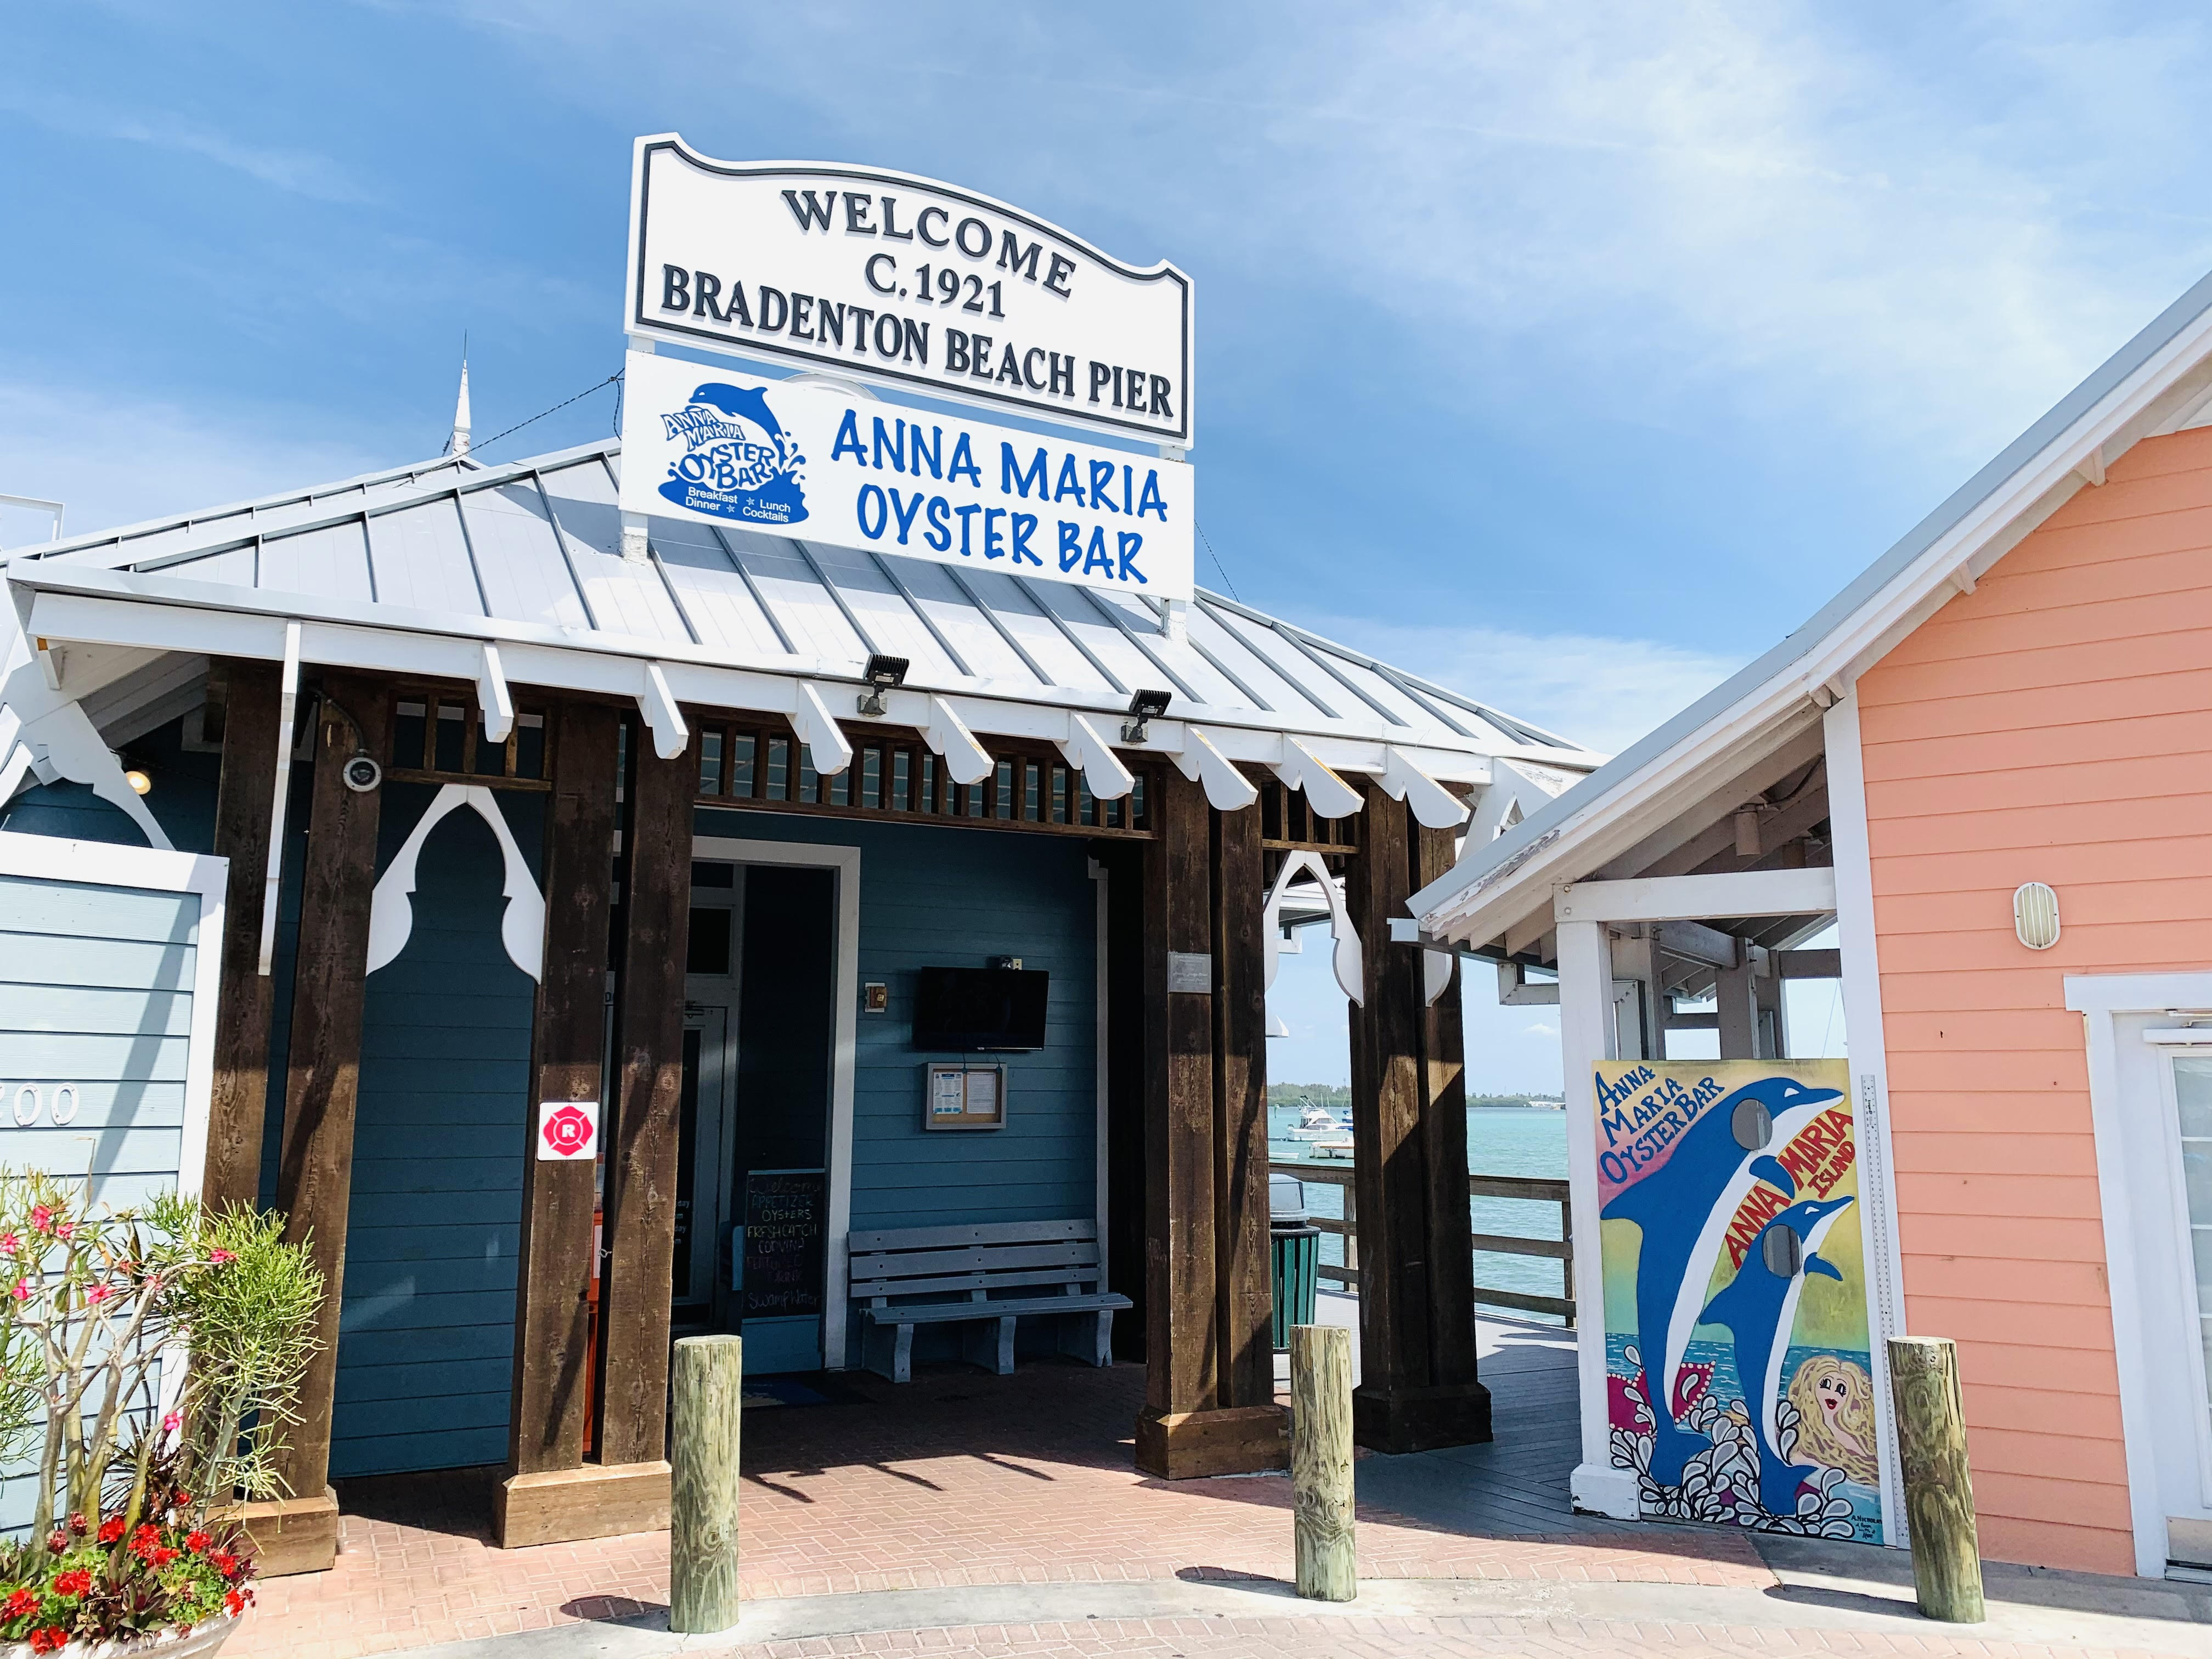 Discover the best things to do on Anna Maria Island from Top US Family Travel Blog, Travel With A Plan!